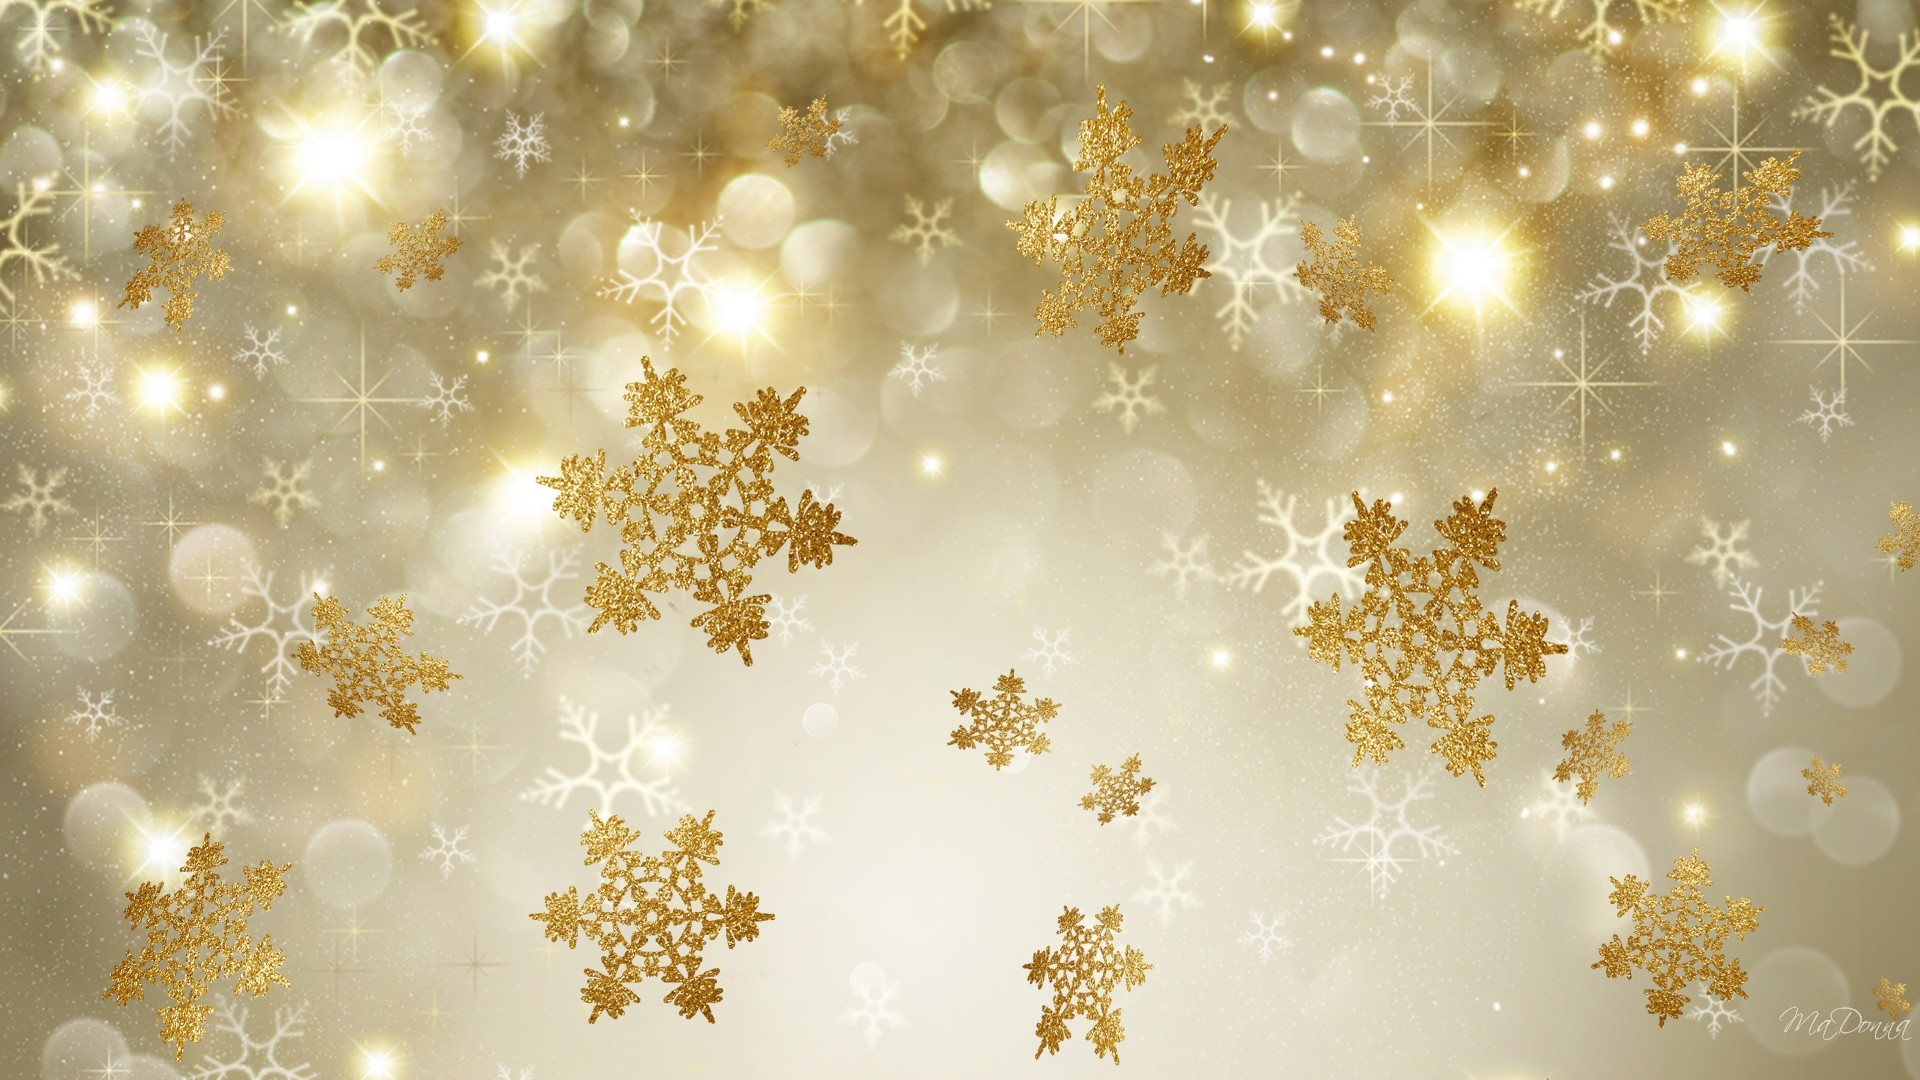 Snow flake background images